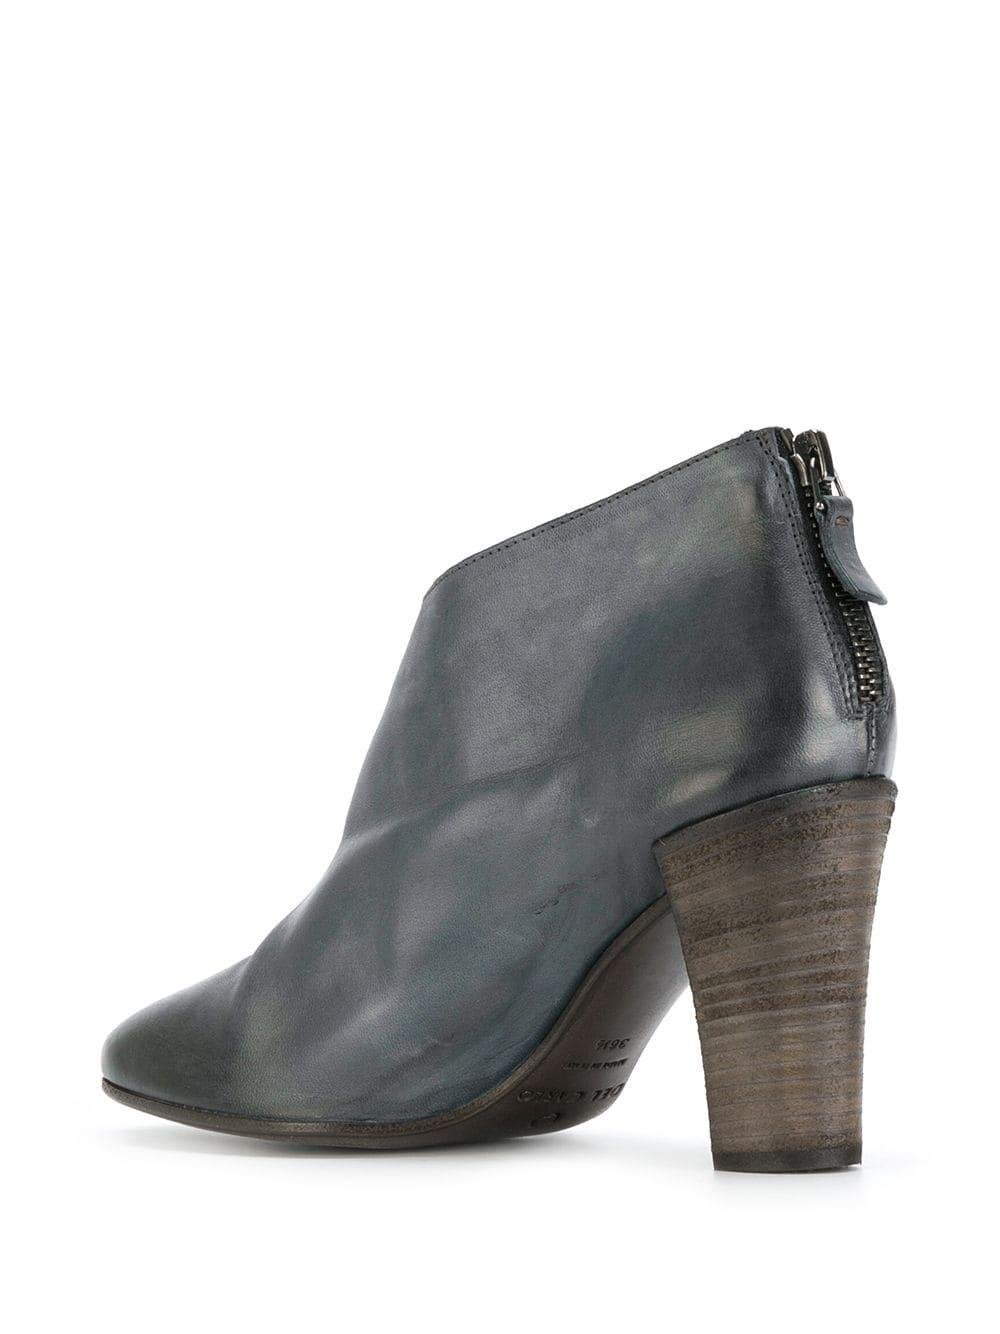 Roberto Del Carlo Leather Cut Out Detail Boots in Grey (Grey)